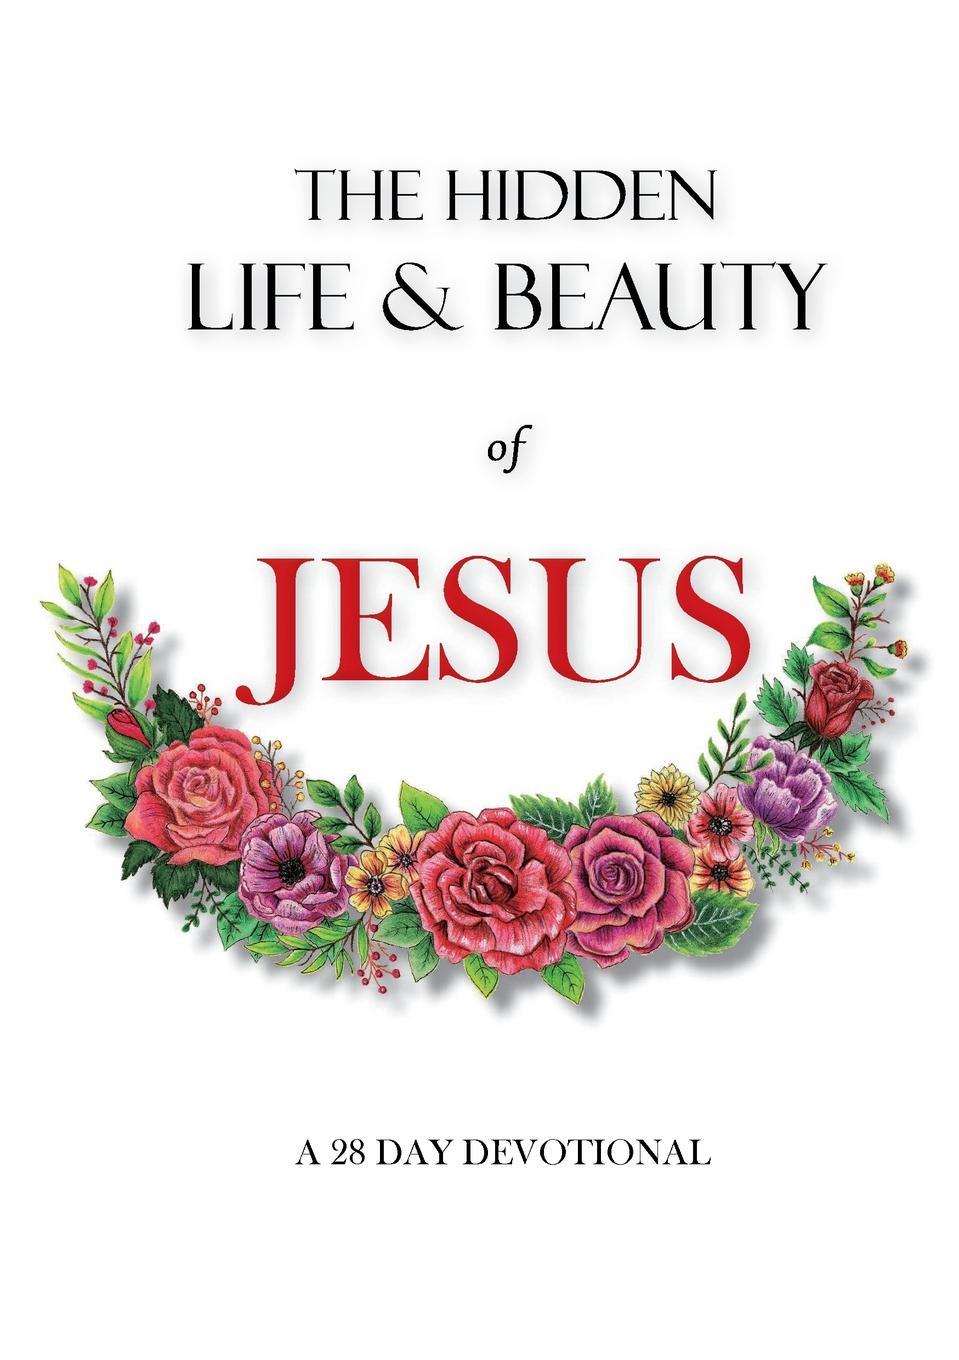 Rachel Wenke The hidden life and beauty of Jesus. A 28 day devotional living in his glorious presence